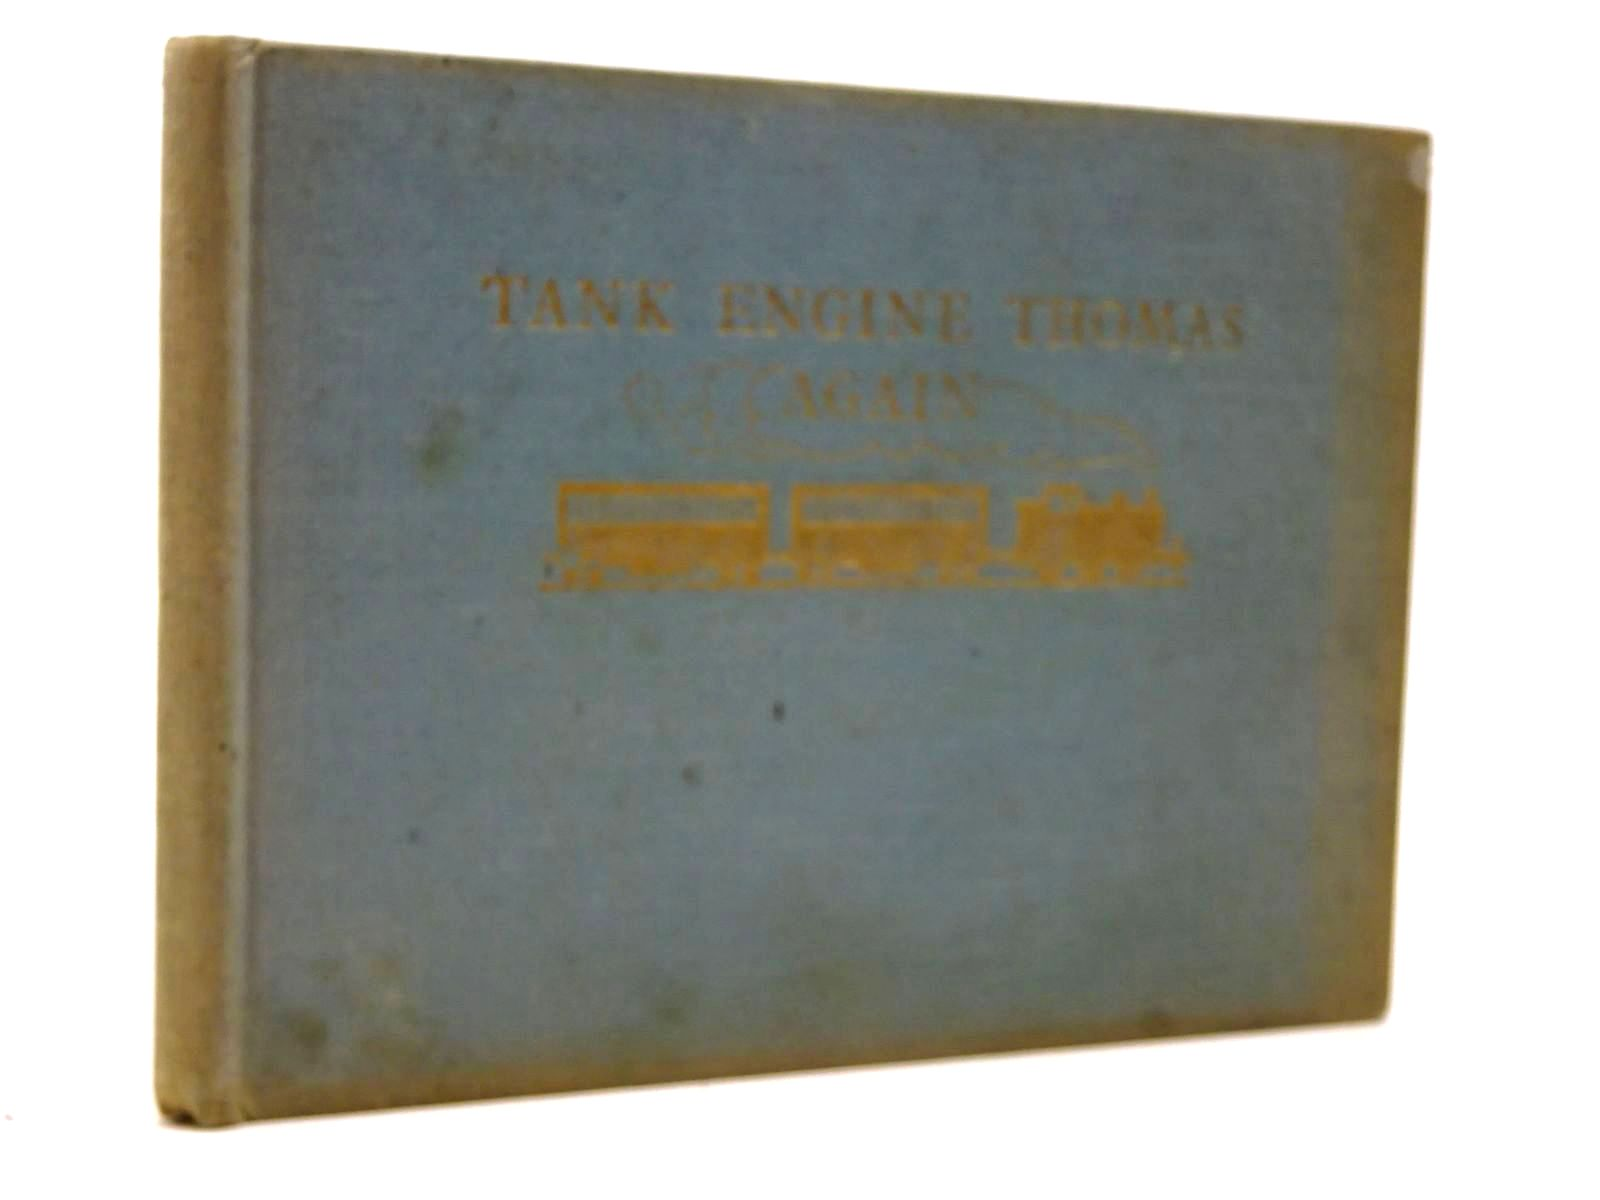 Photo of TANK ENGINE THOMAS AGAIN written by Awdry, Rev. W. illustrated by Dalby, C. Reginald published by Edmund Ward Ltd. (STOCK CODE: 2130423)  for sale by Stella & Rose's Books